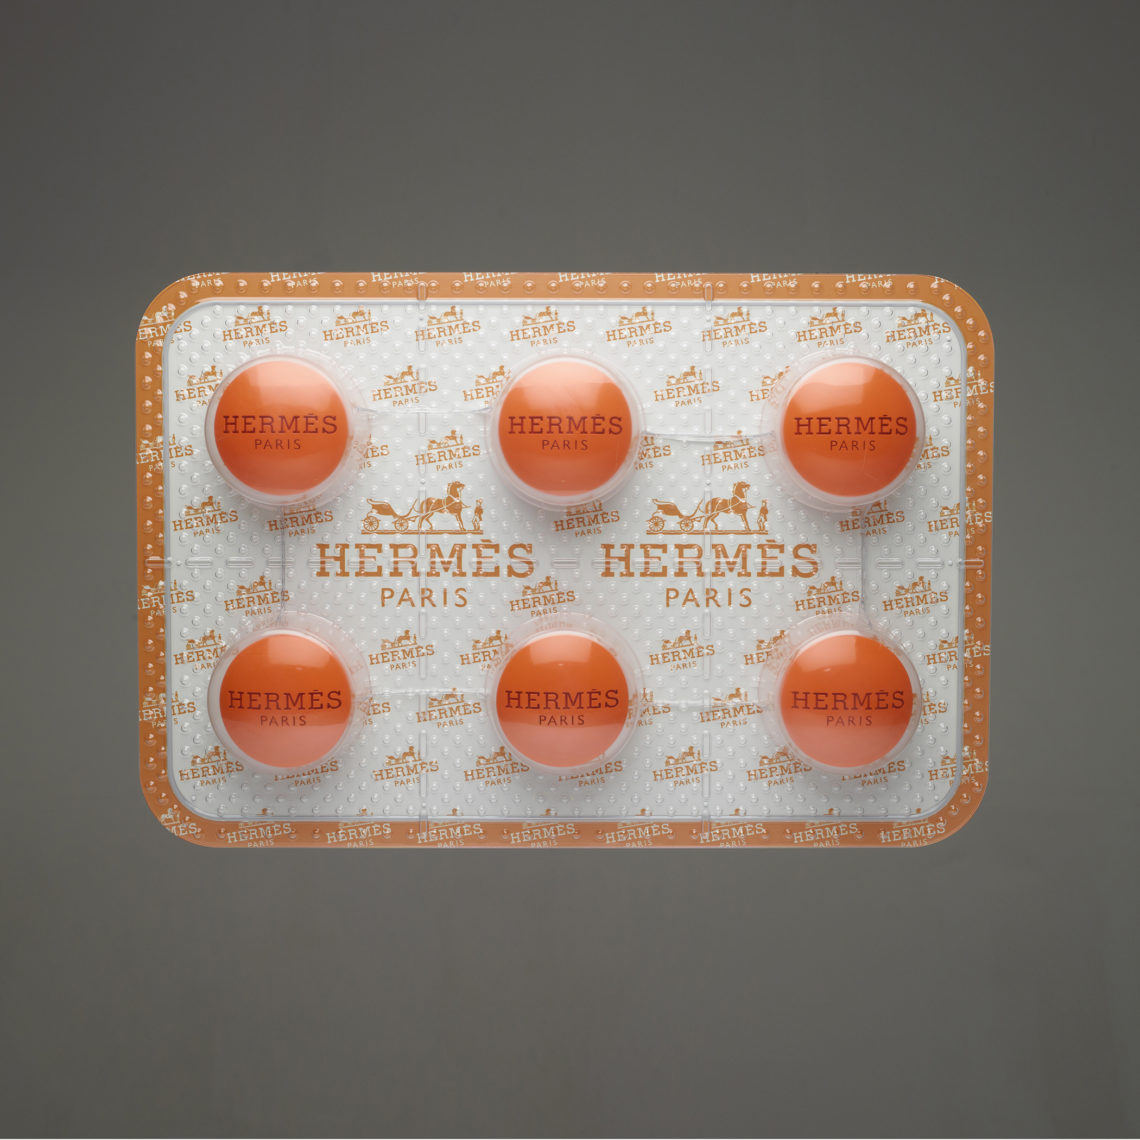 Desire-Obtain-Cherish-Designer-Drugs-Hermes